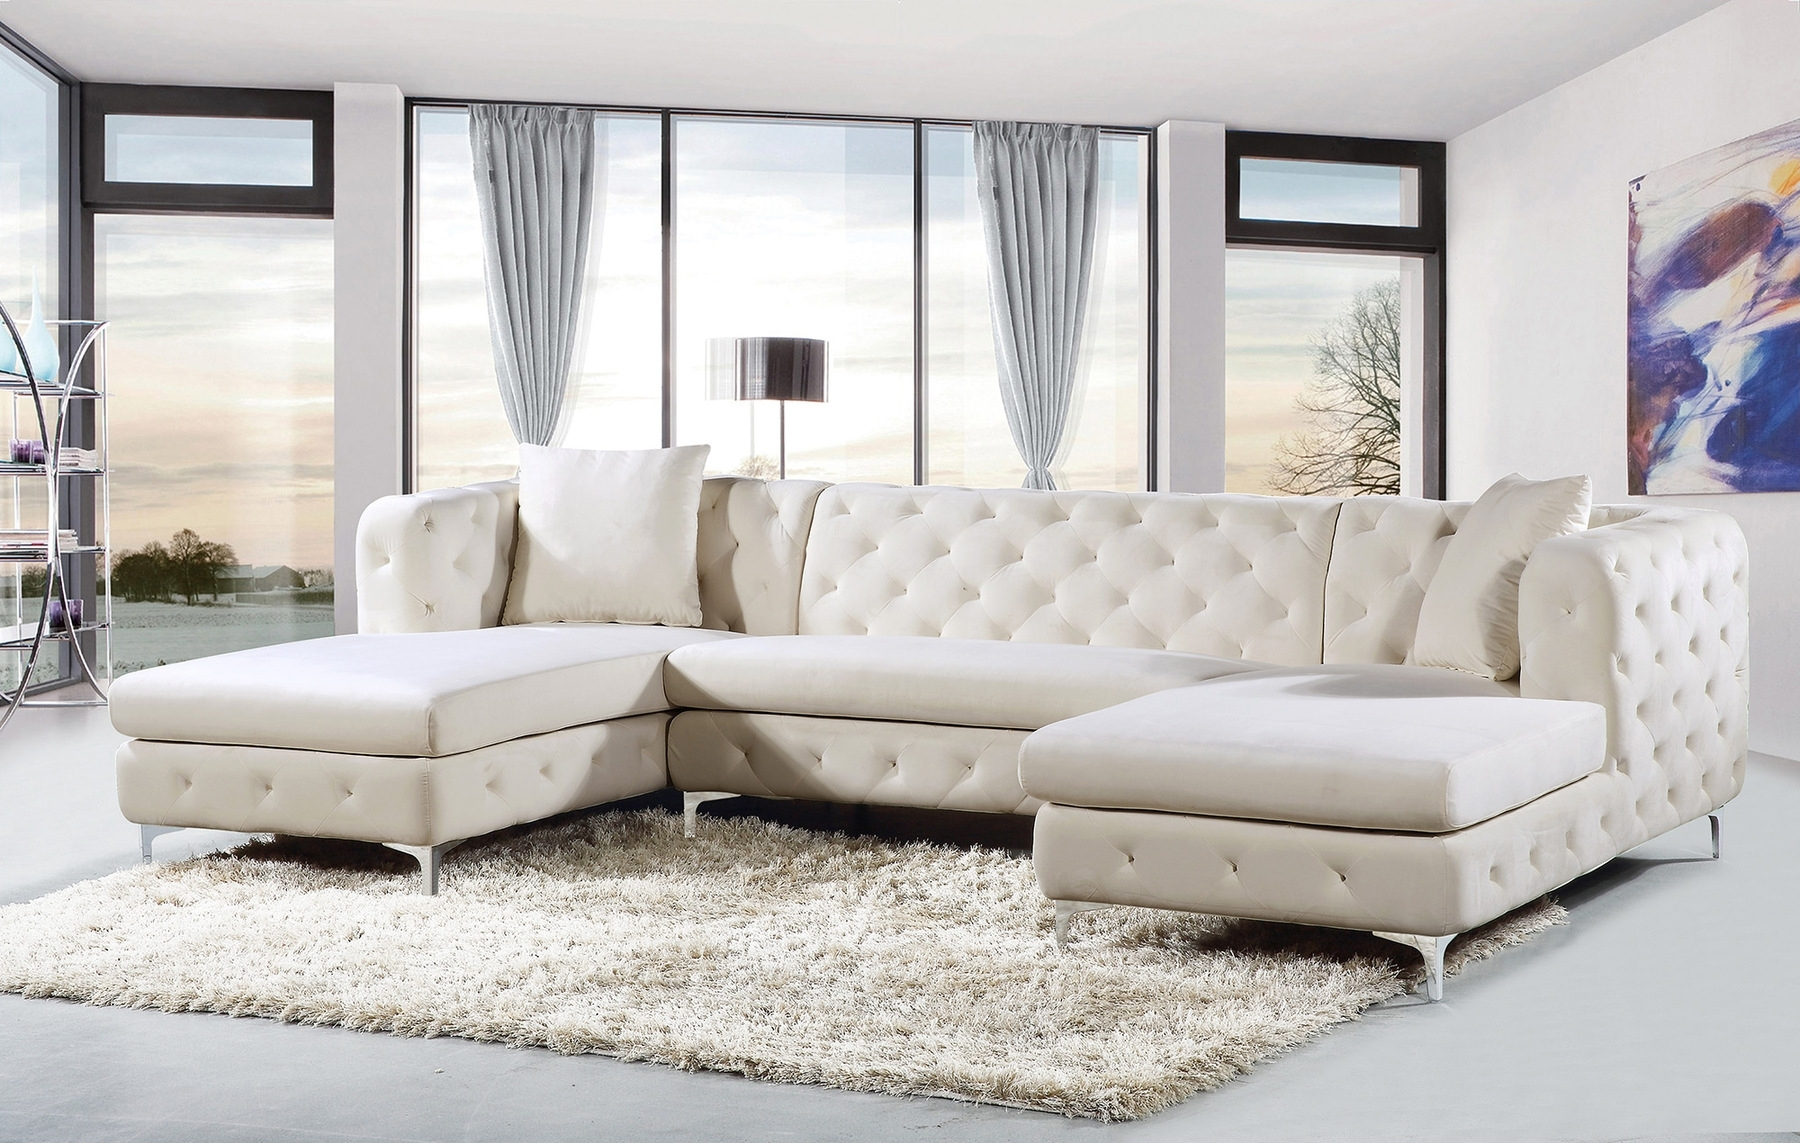 Gail Cream Sectional Sofa 664 Meridian Furniture Sectional Sofas Intended For Recent Cream Chaise Sofas (View 2 of 15)